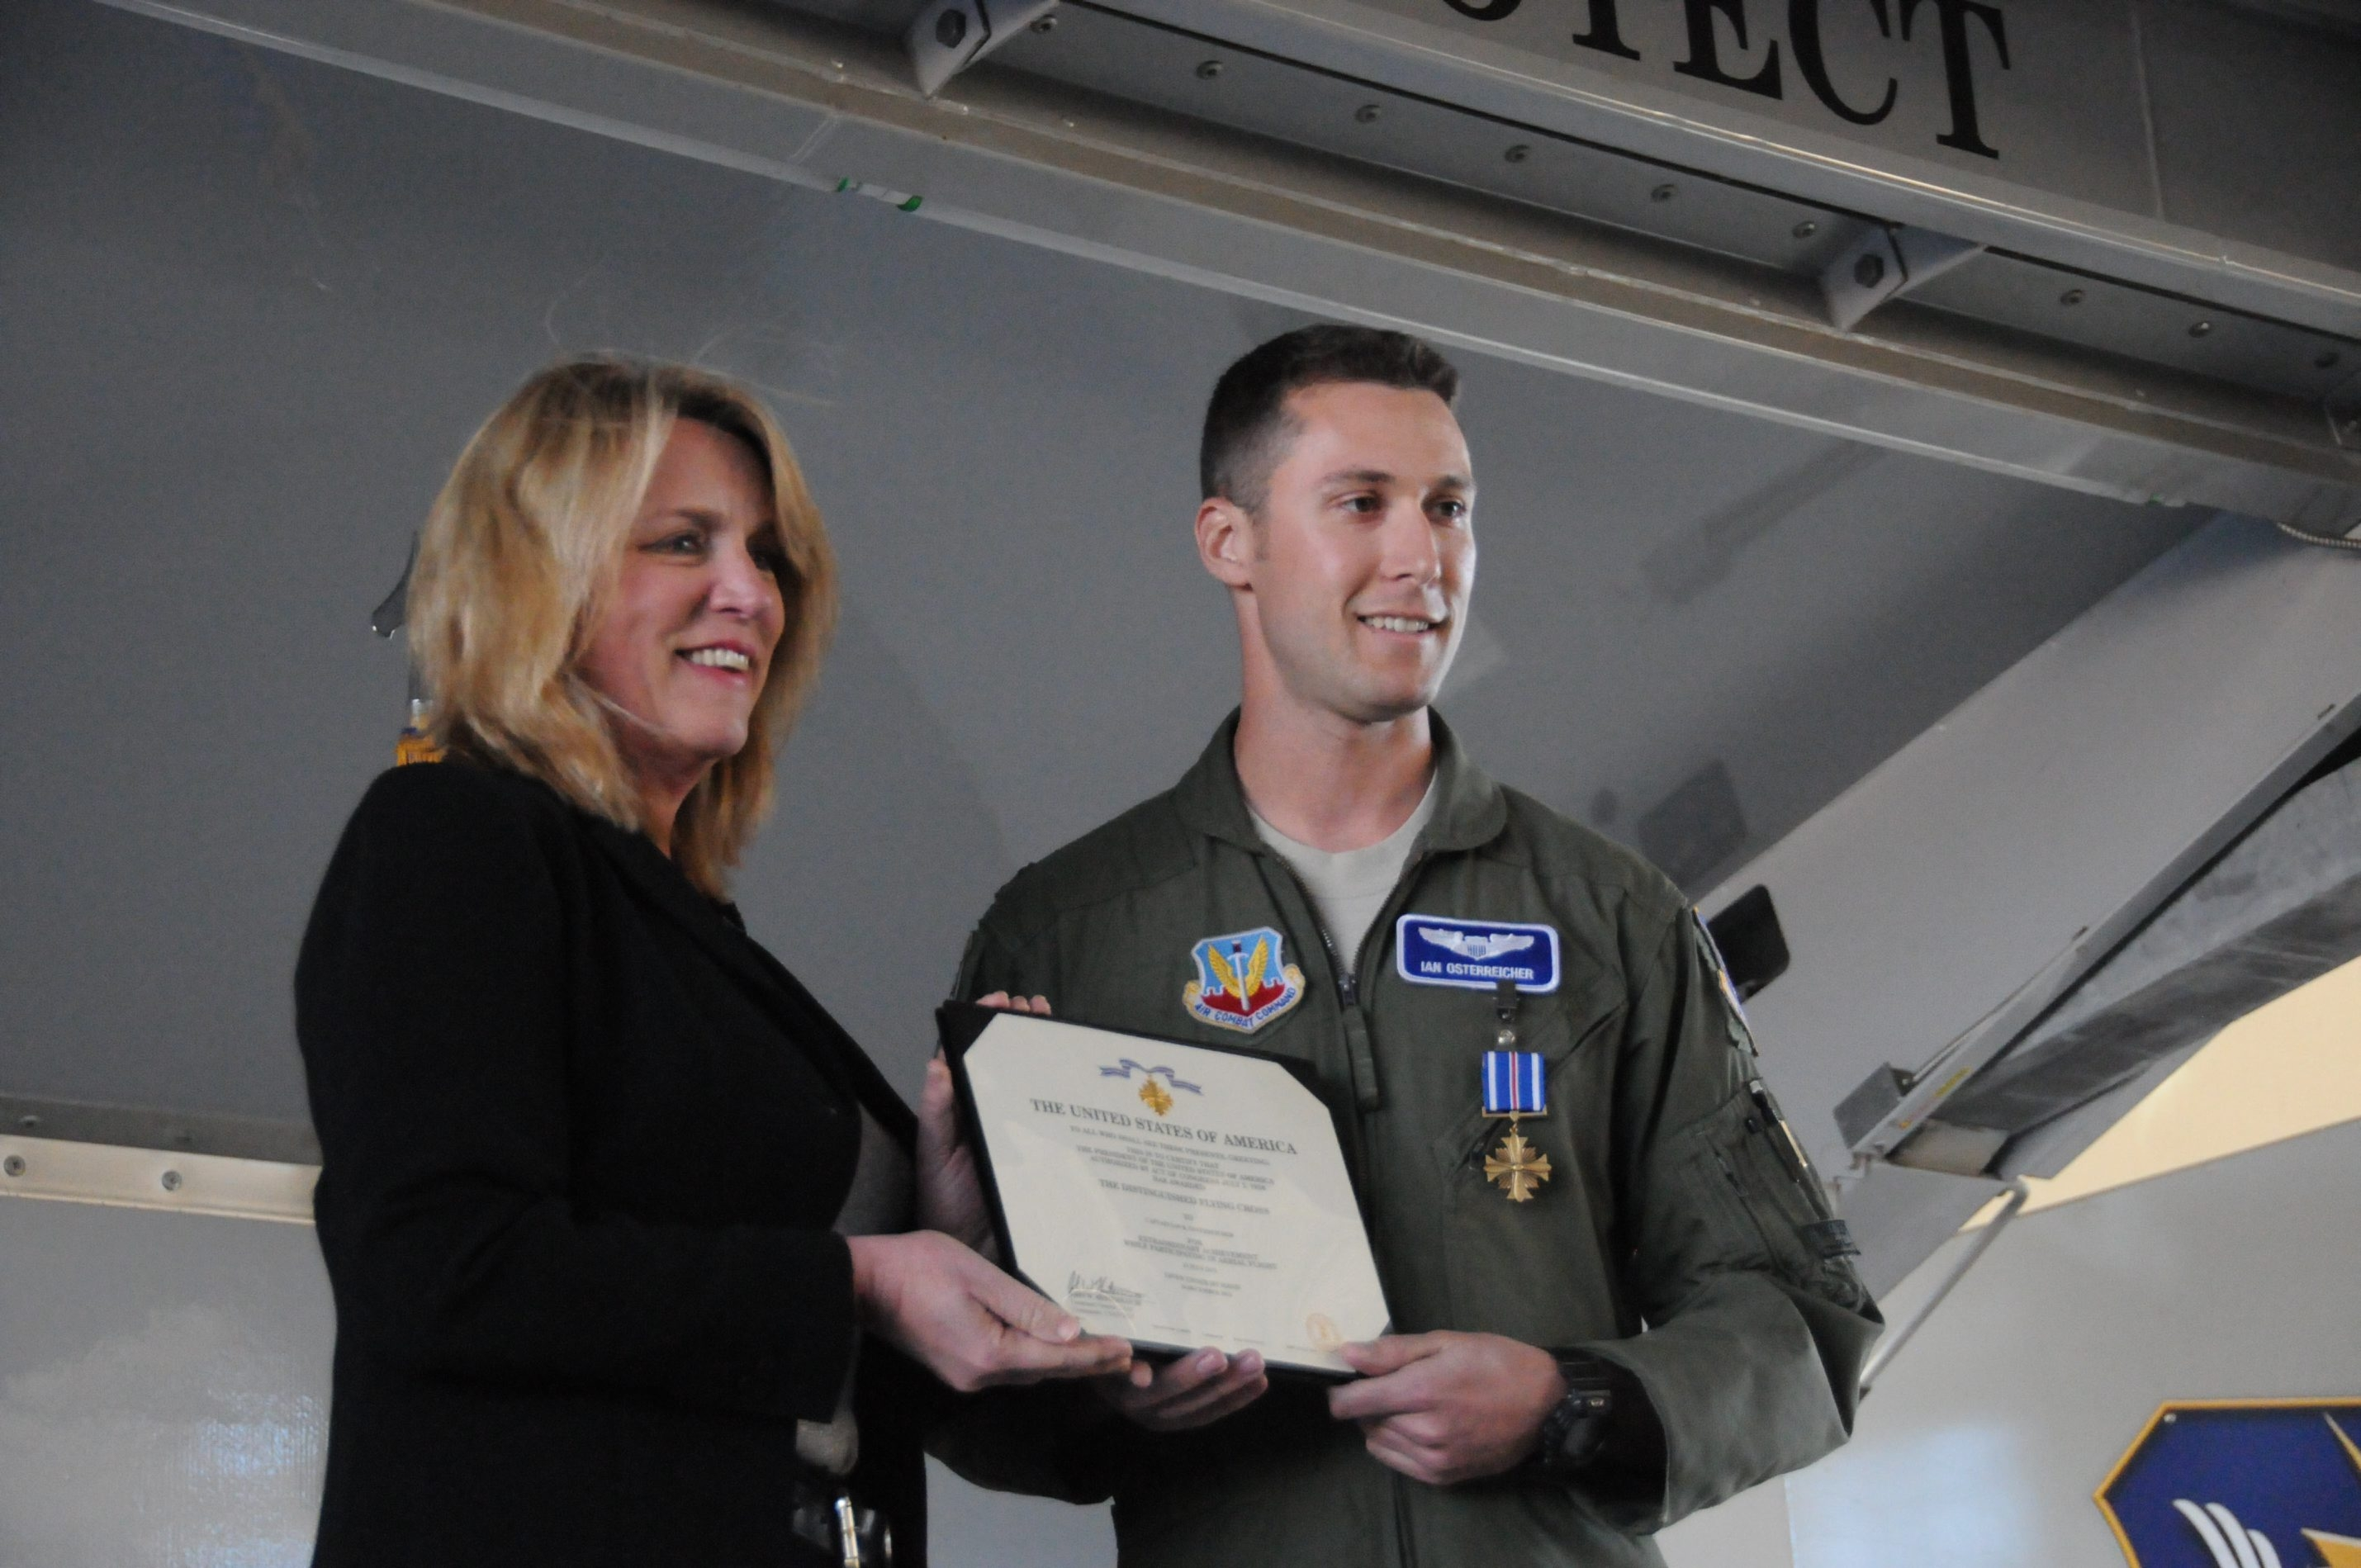 U.S. Air Force Secretary Deborah Lee James presents the Distinguished Flying Cross to former Amherst resident Capt. Ian R. Osterreicher for his action in Afghanistan at Moody Air Force Base in Valdosta, Ga., on Friday.